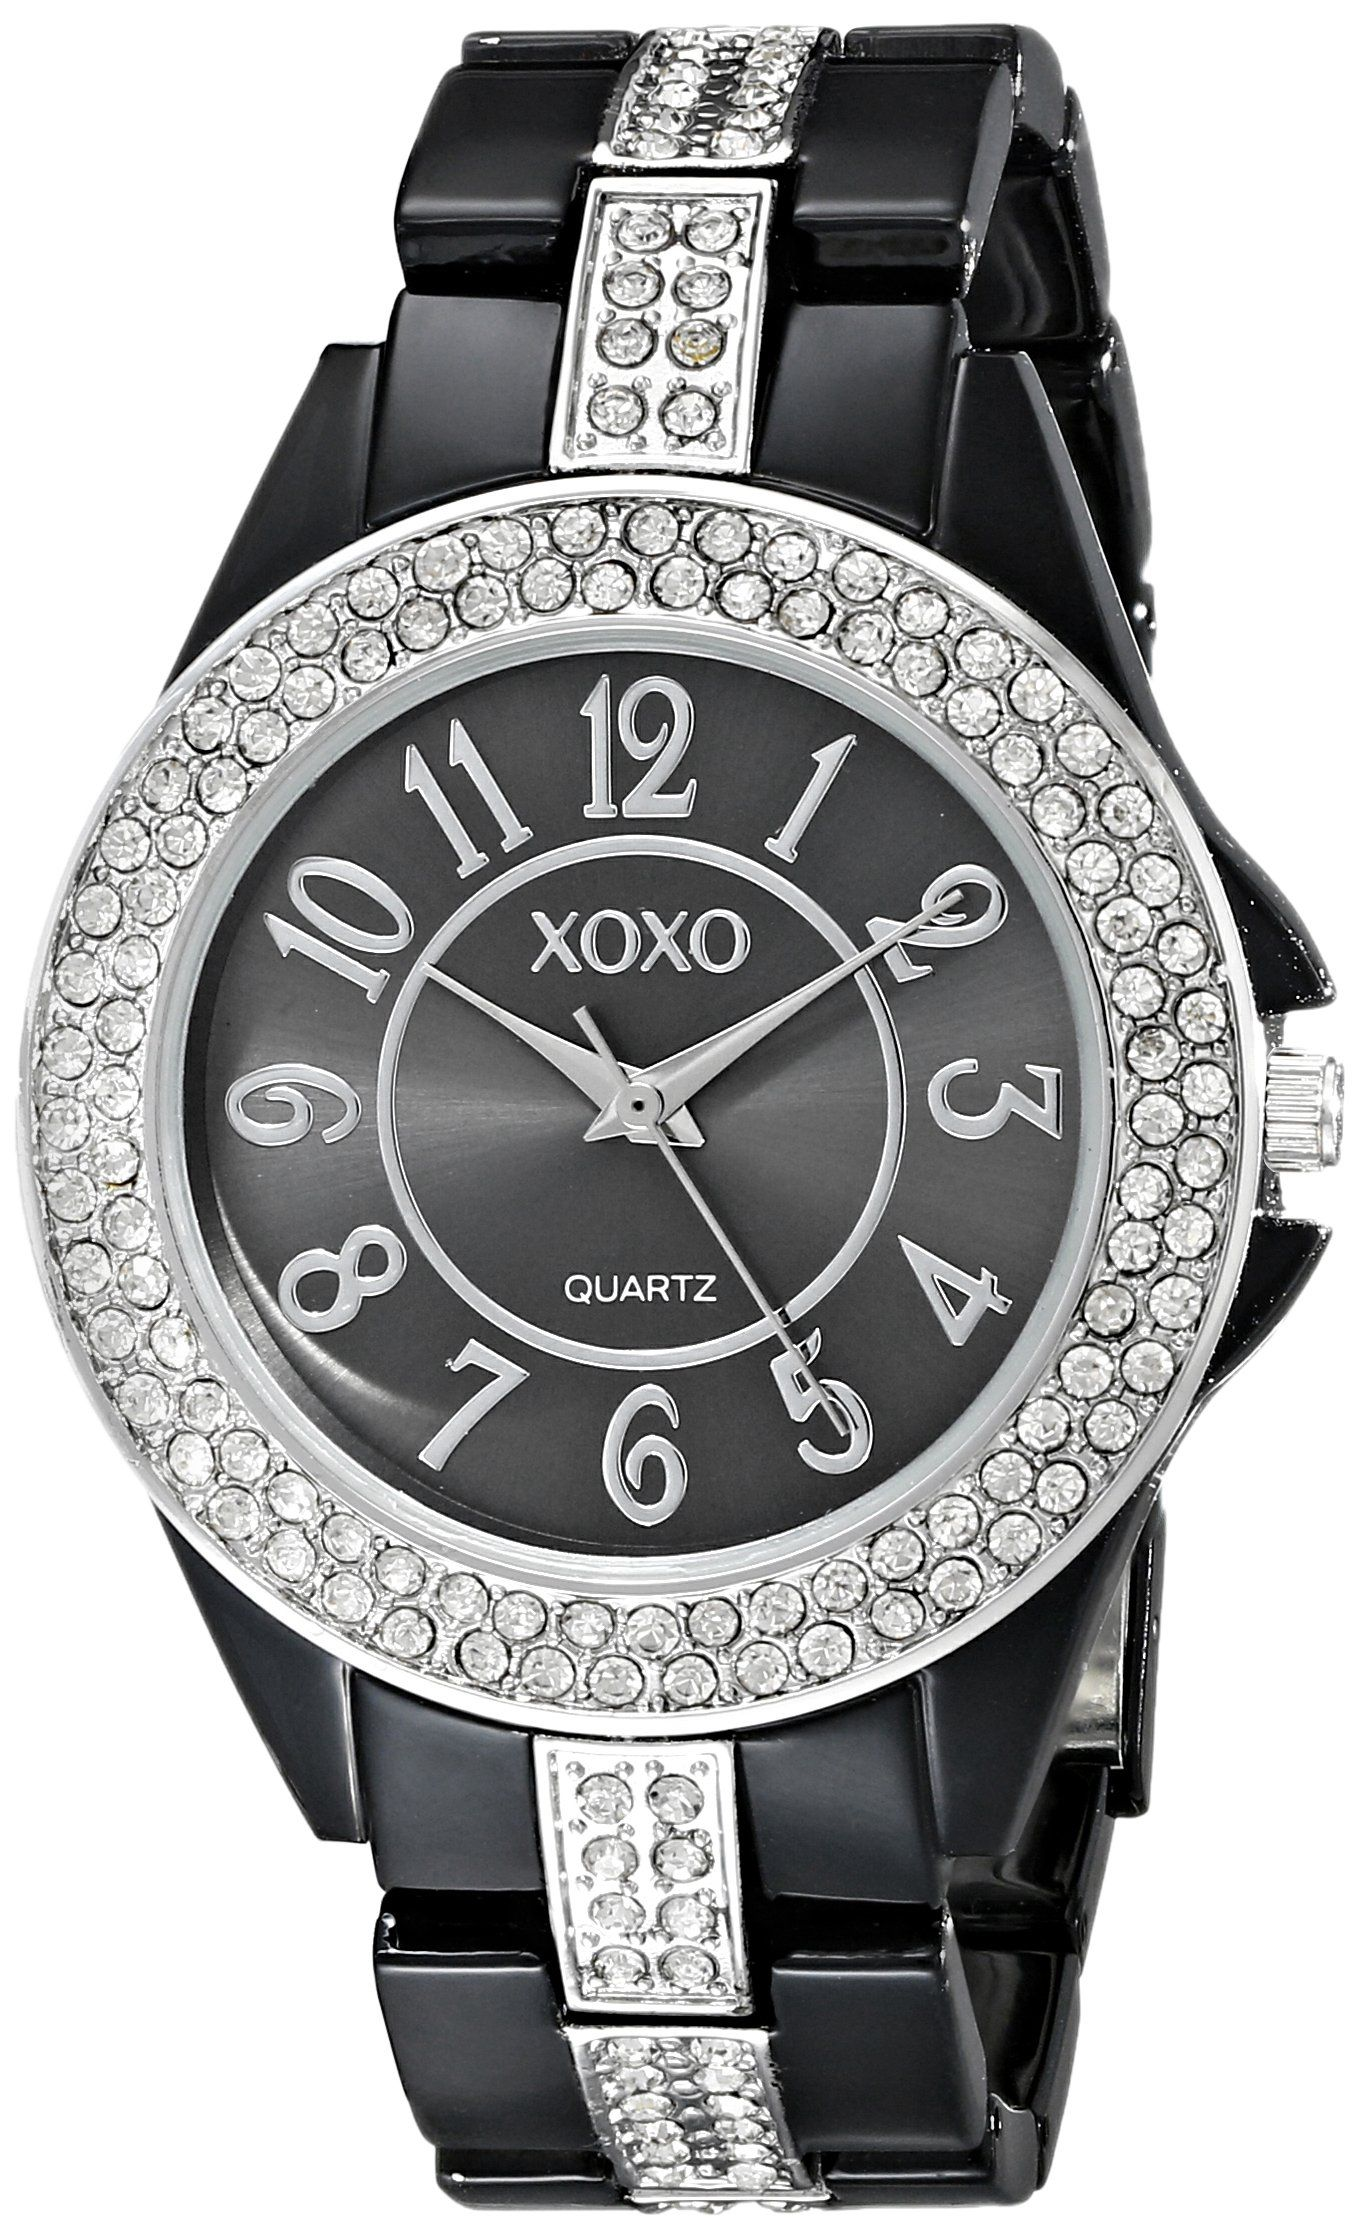 Women 39 s watches xoxo xo5461 womens black dial analog quartz watch with alloy strap was listed for Watches xoxo